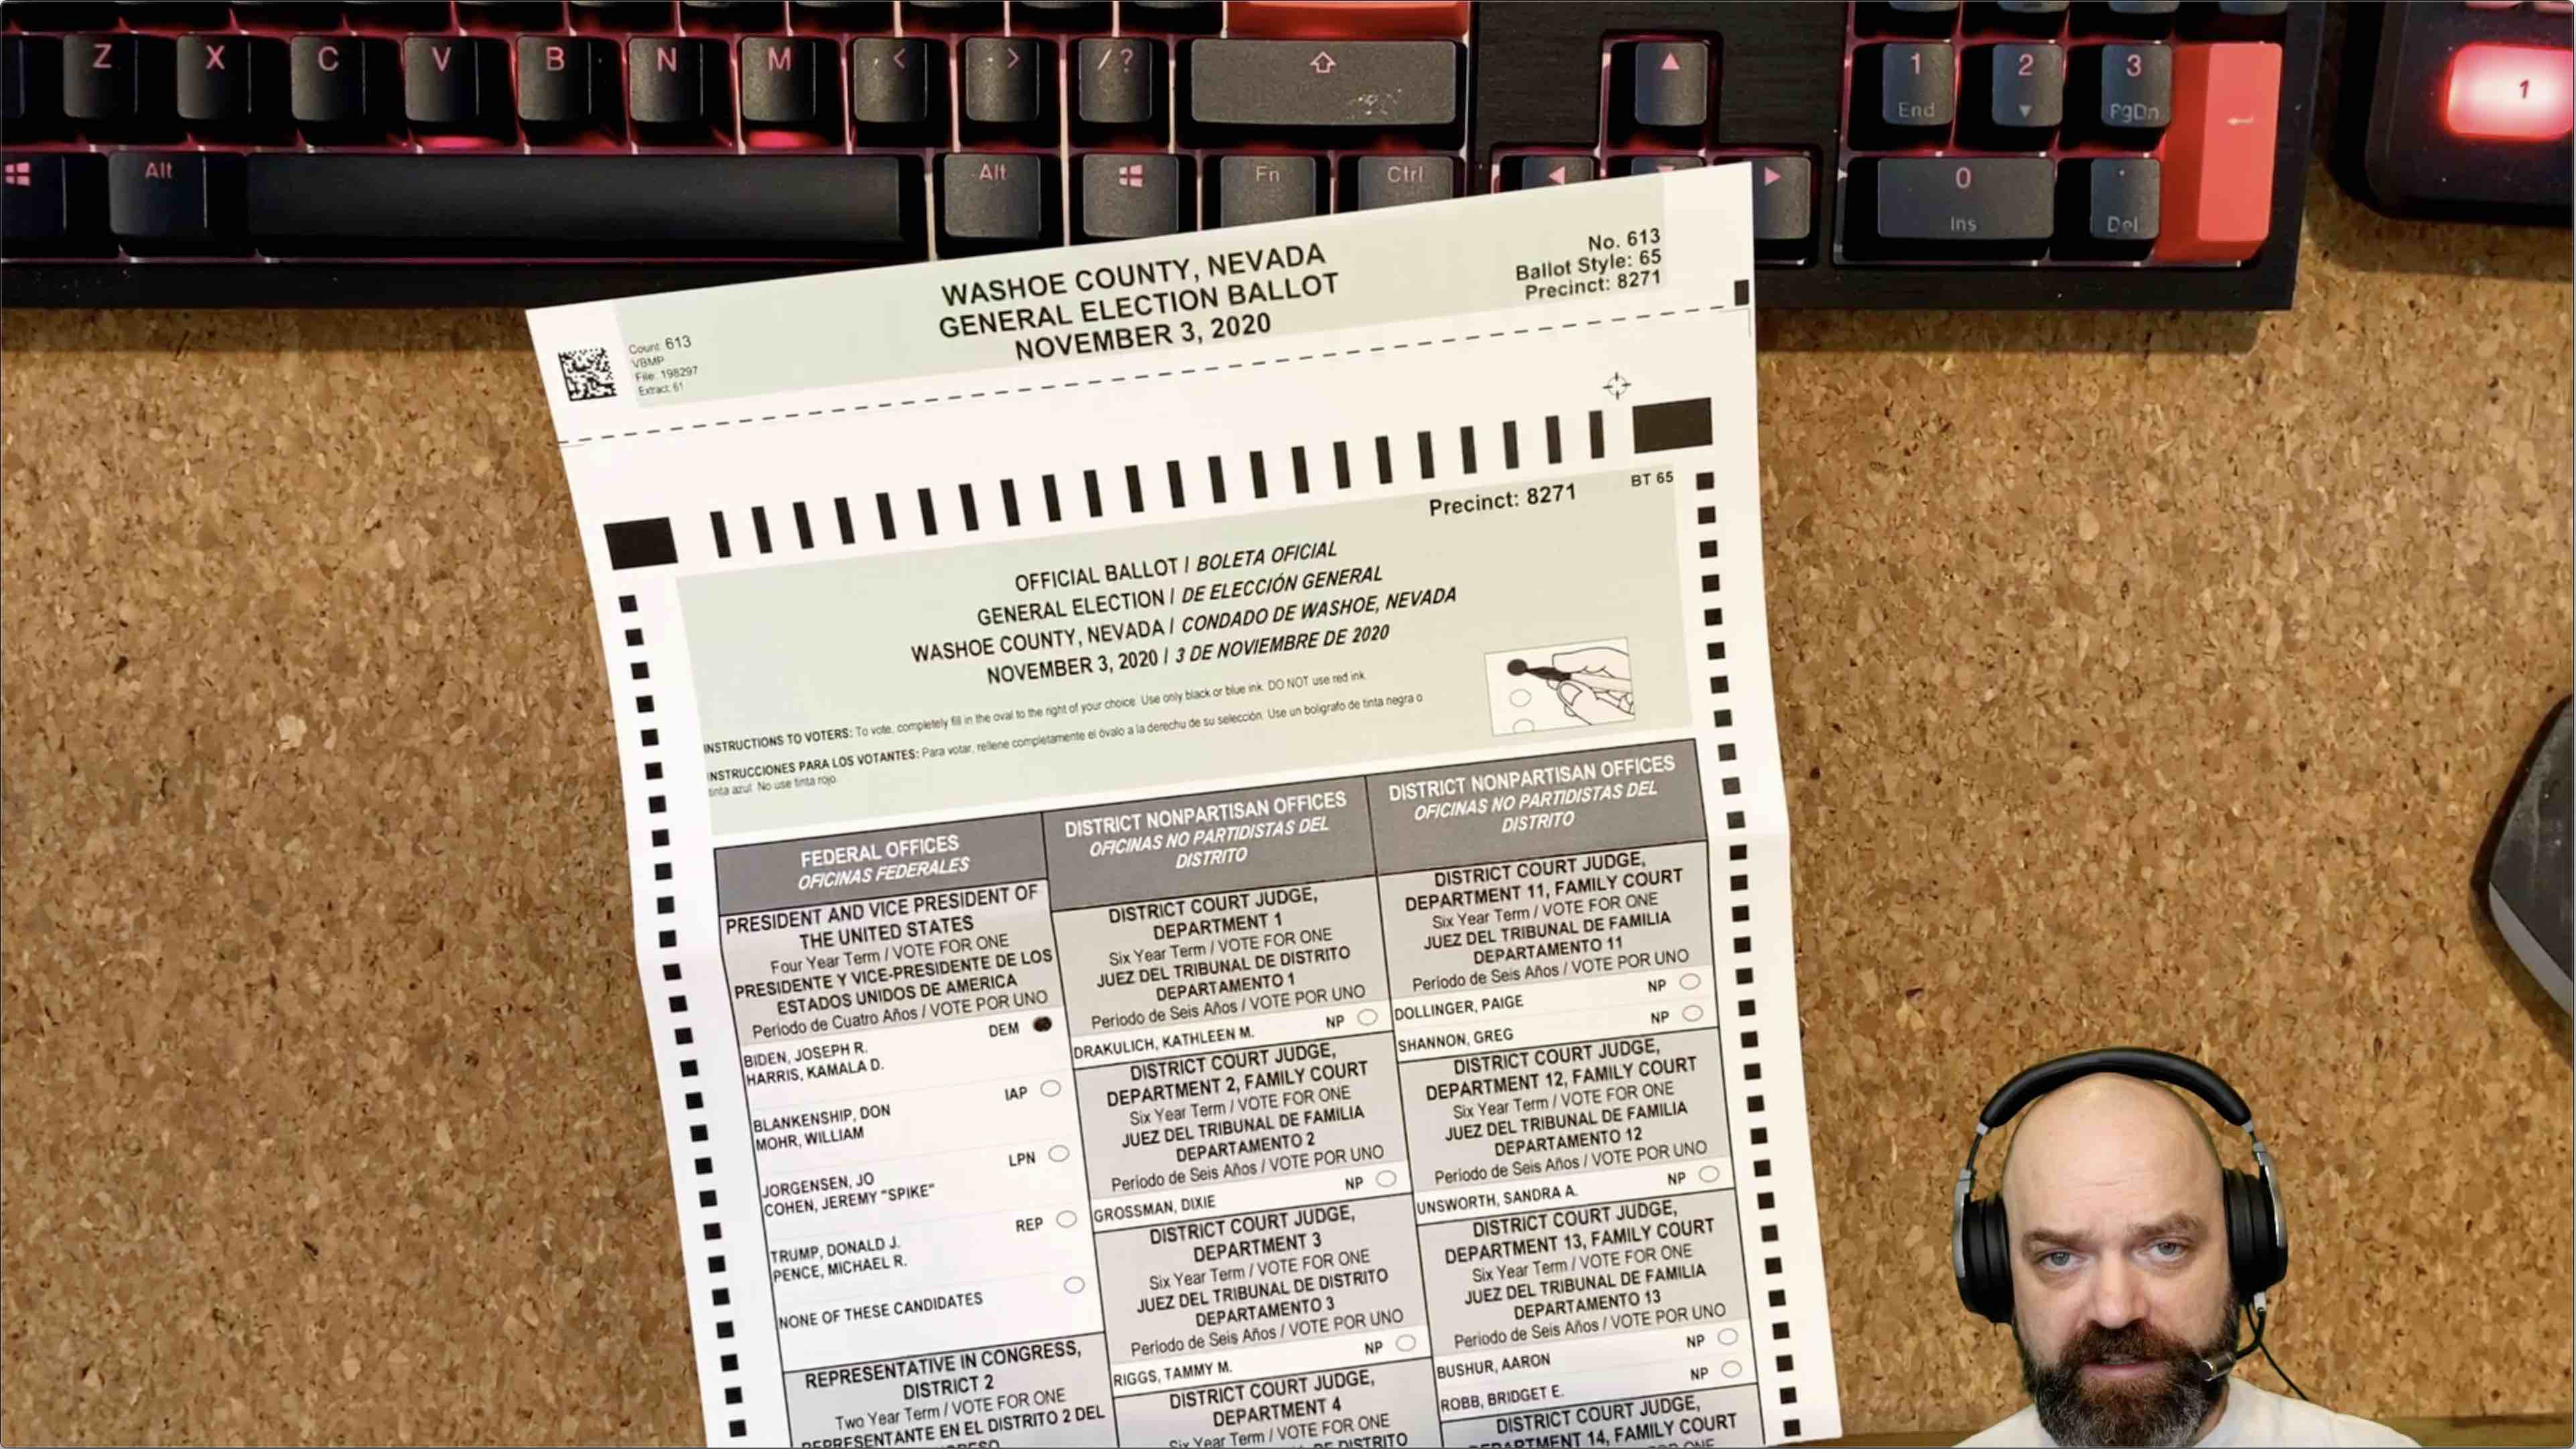 US citizen in the process of voting